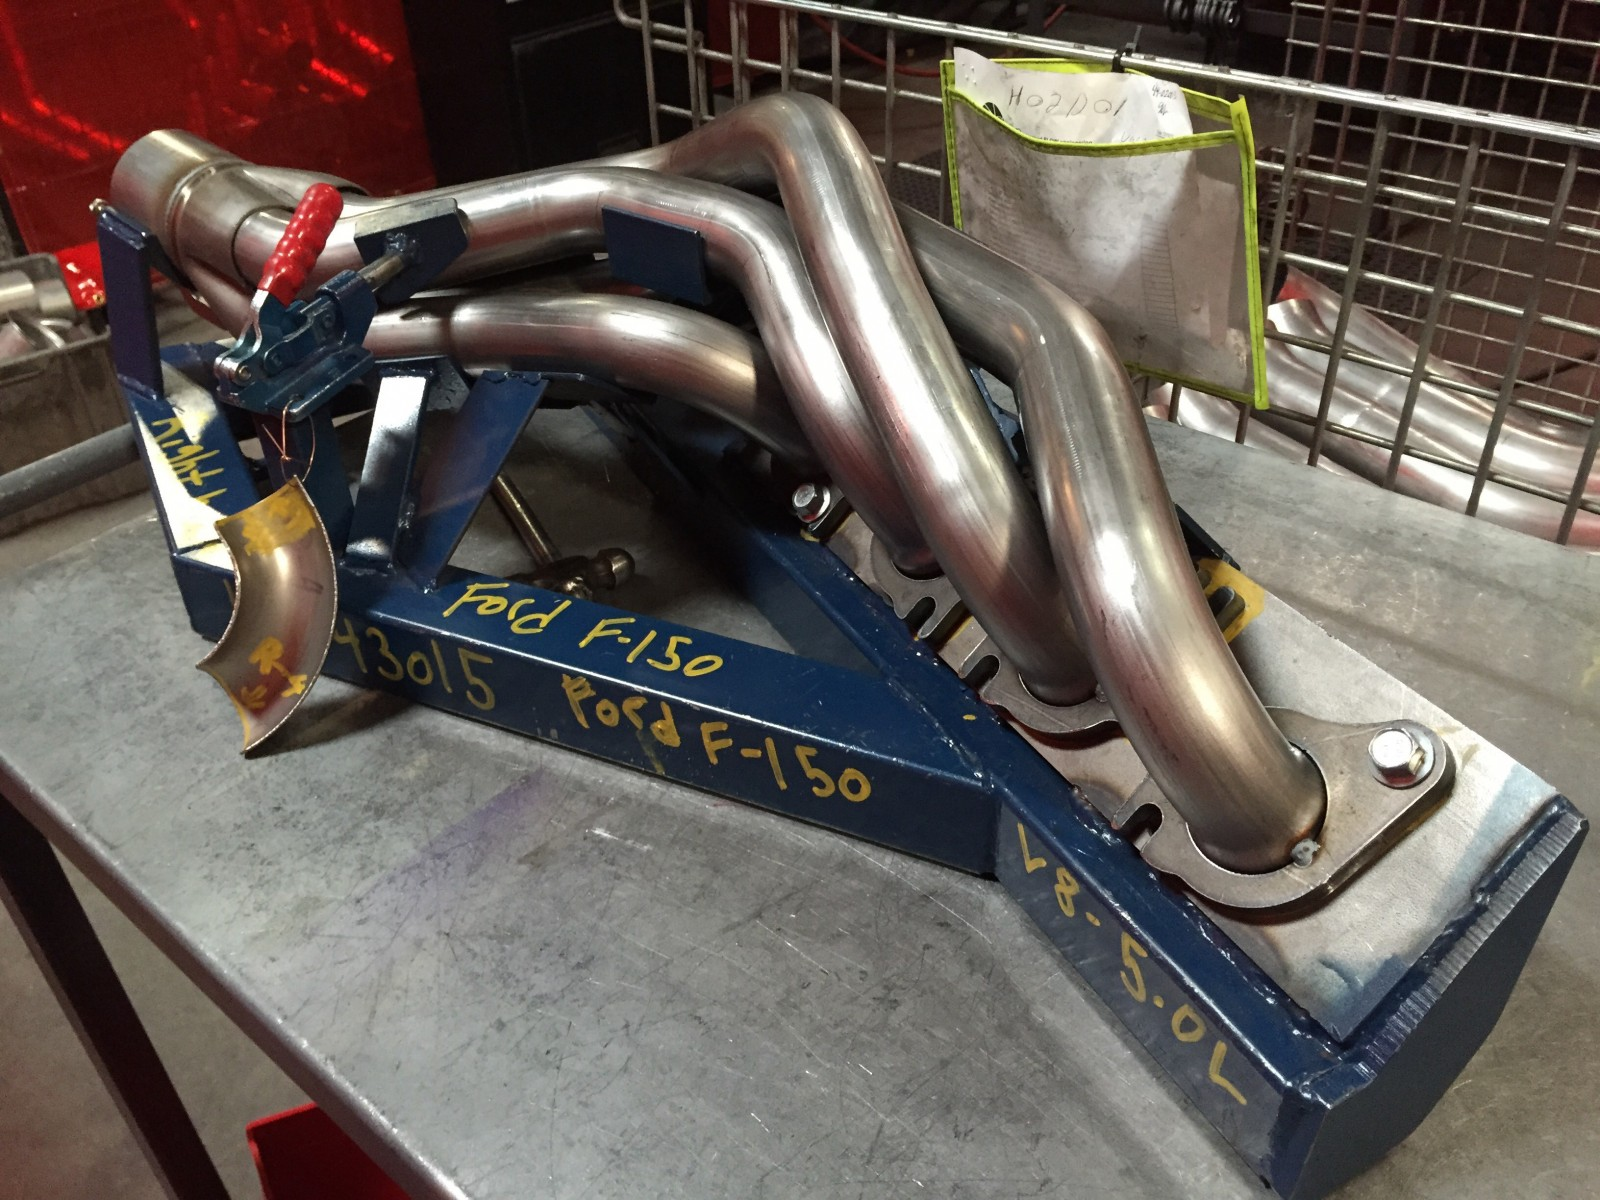 Ford F150 headers on JIG fixture